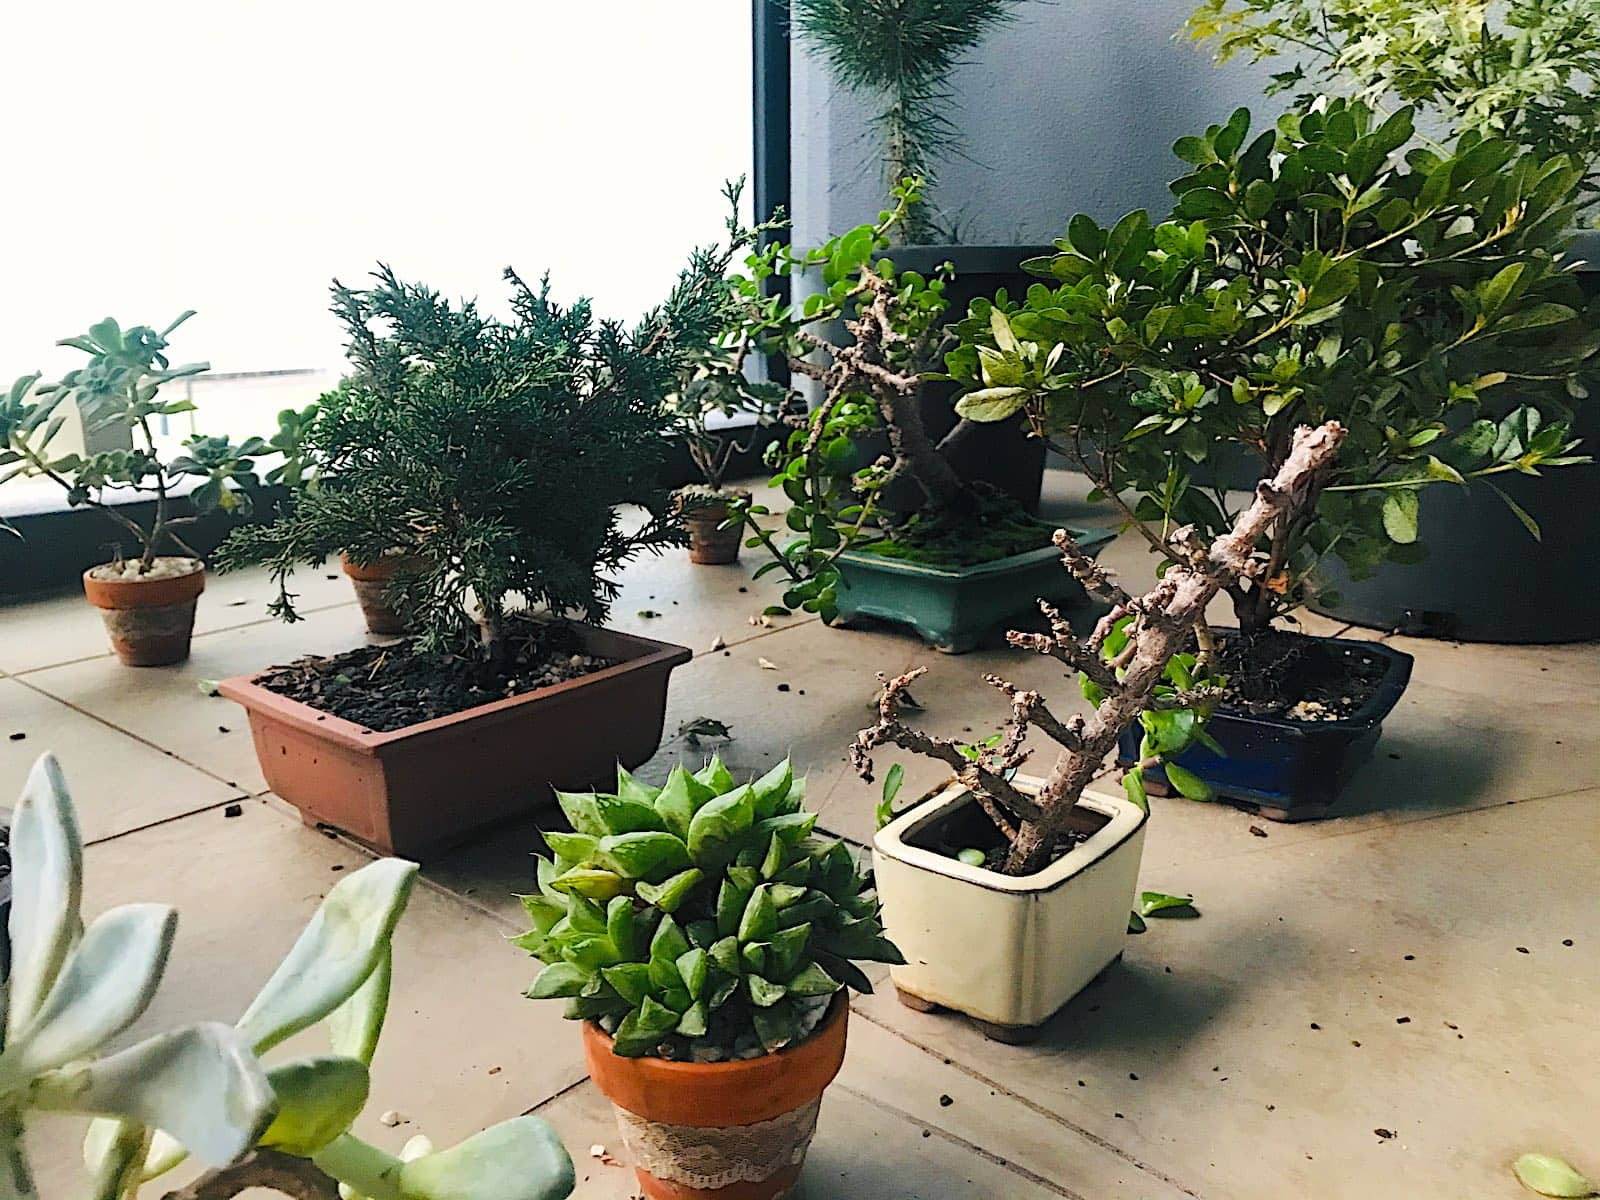 A number of potted plants close together, mostly succulents and bonsai